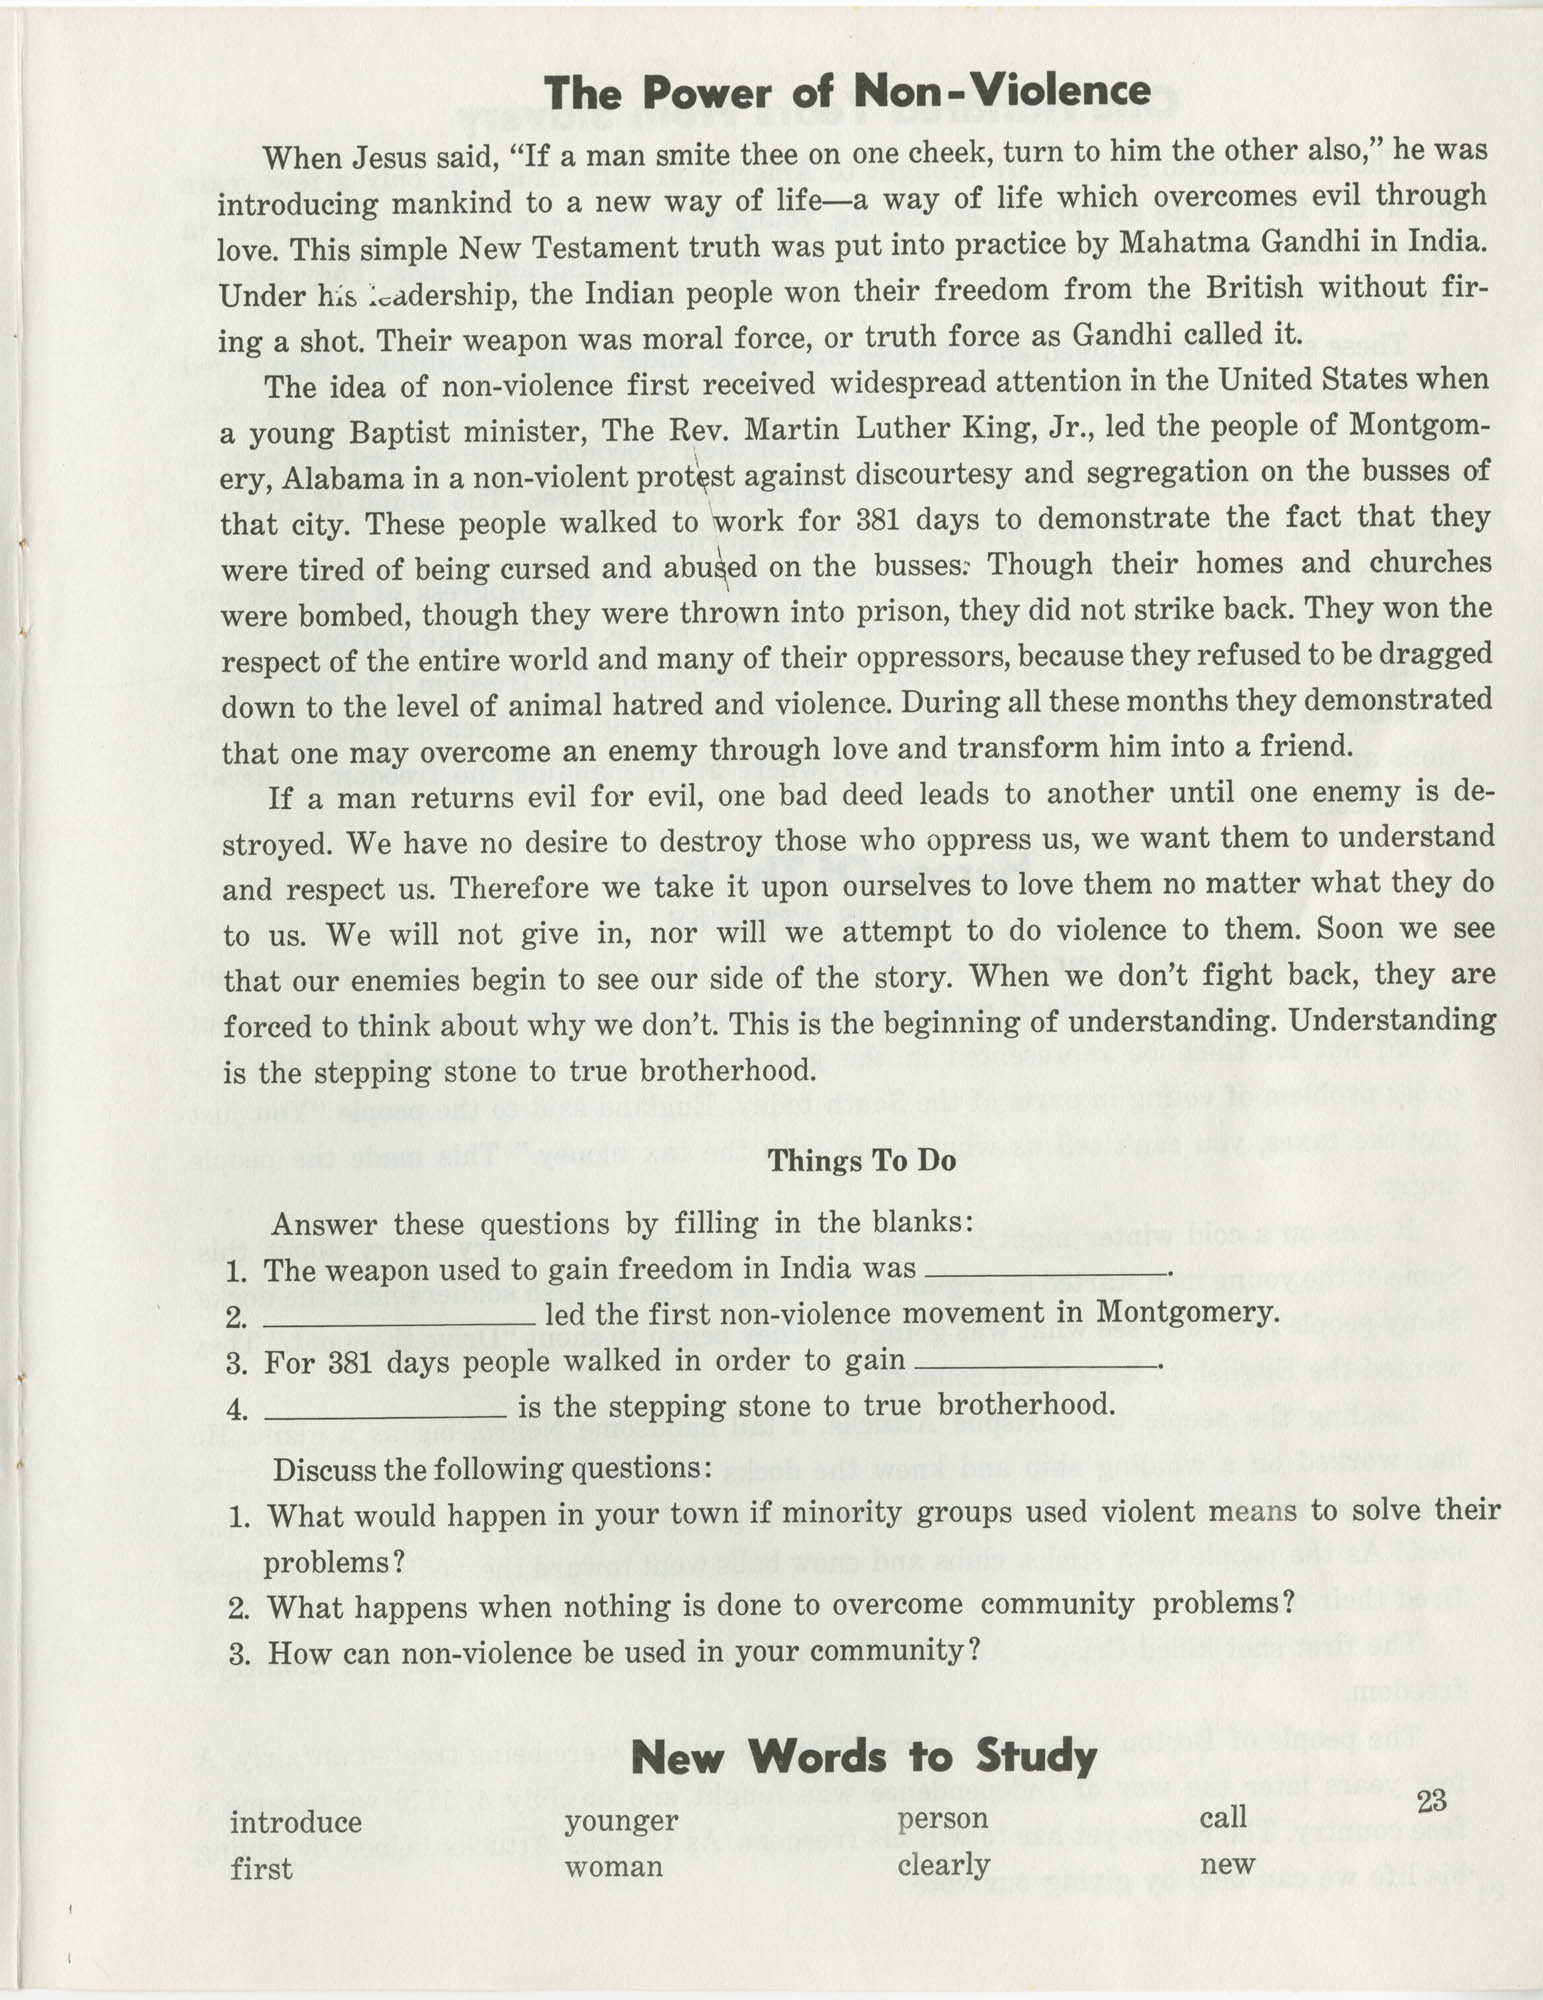 Southern Christian Leadership Conference Citizenship School Workbook, Page 23